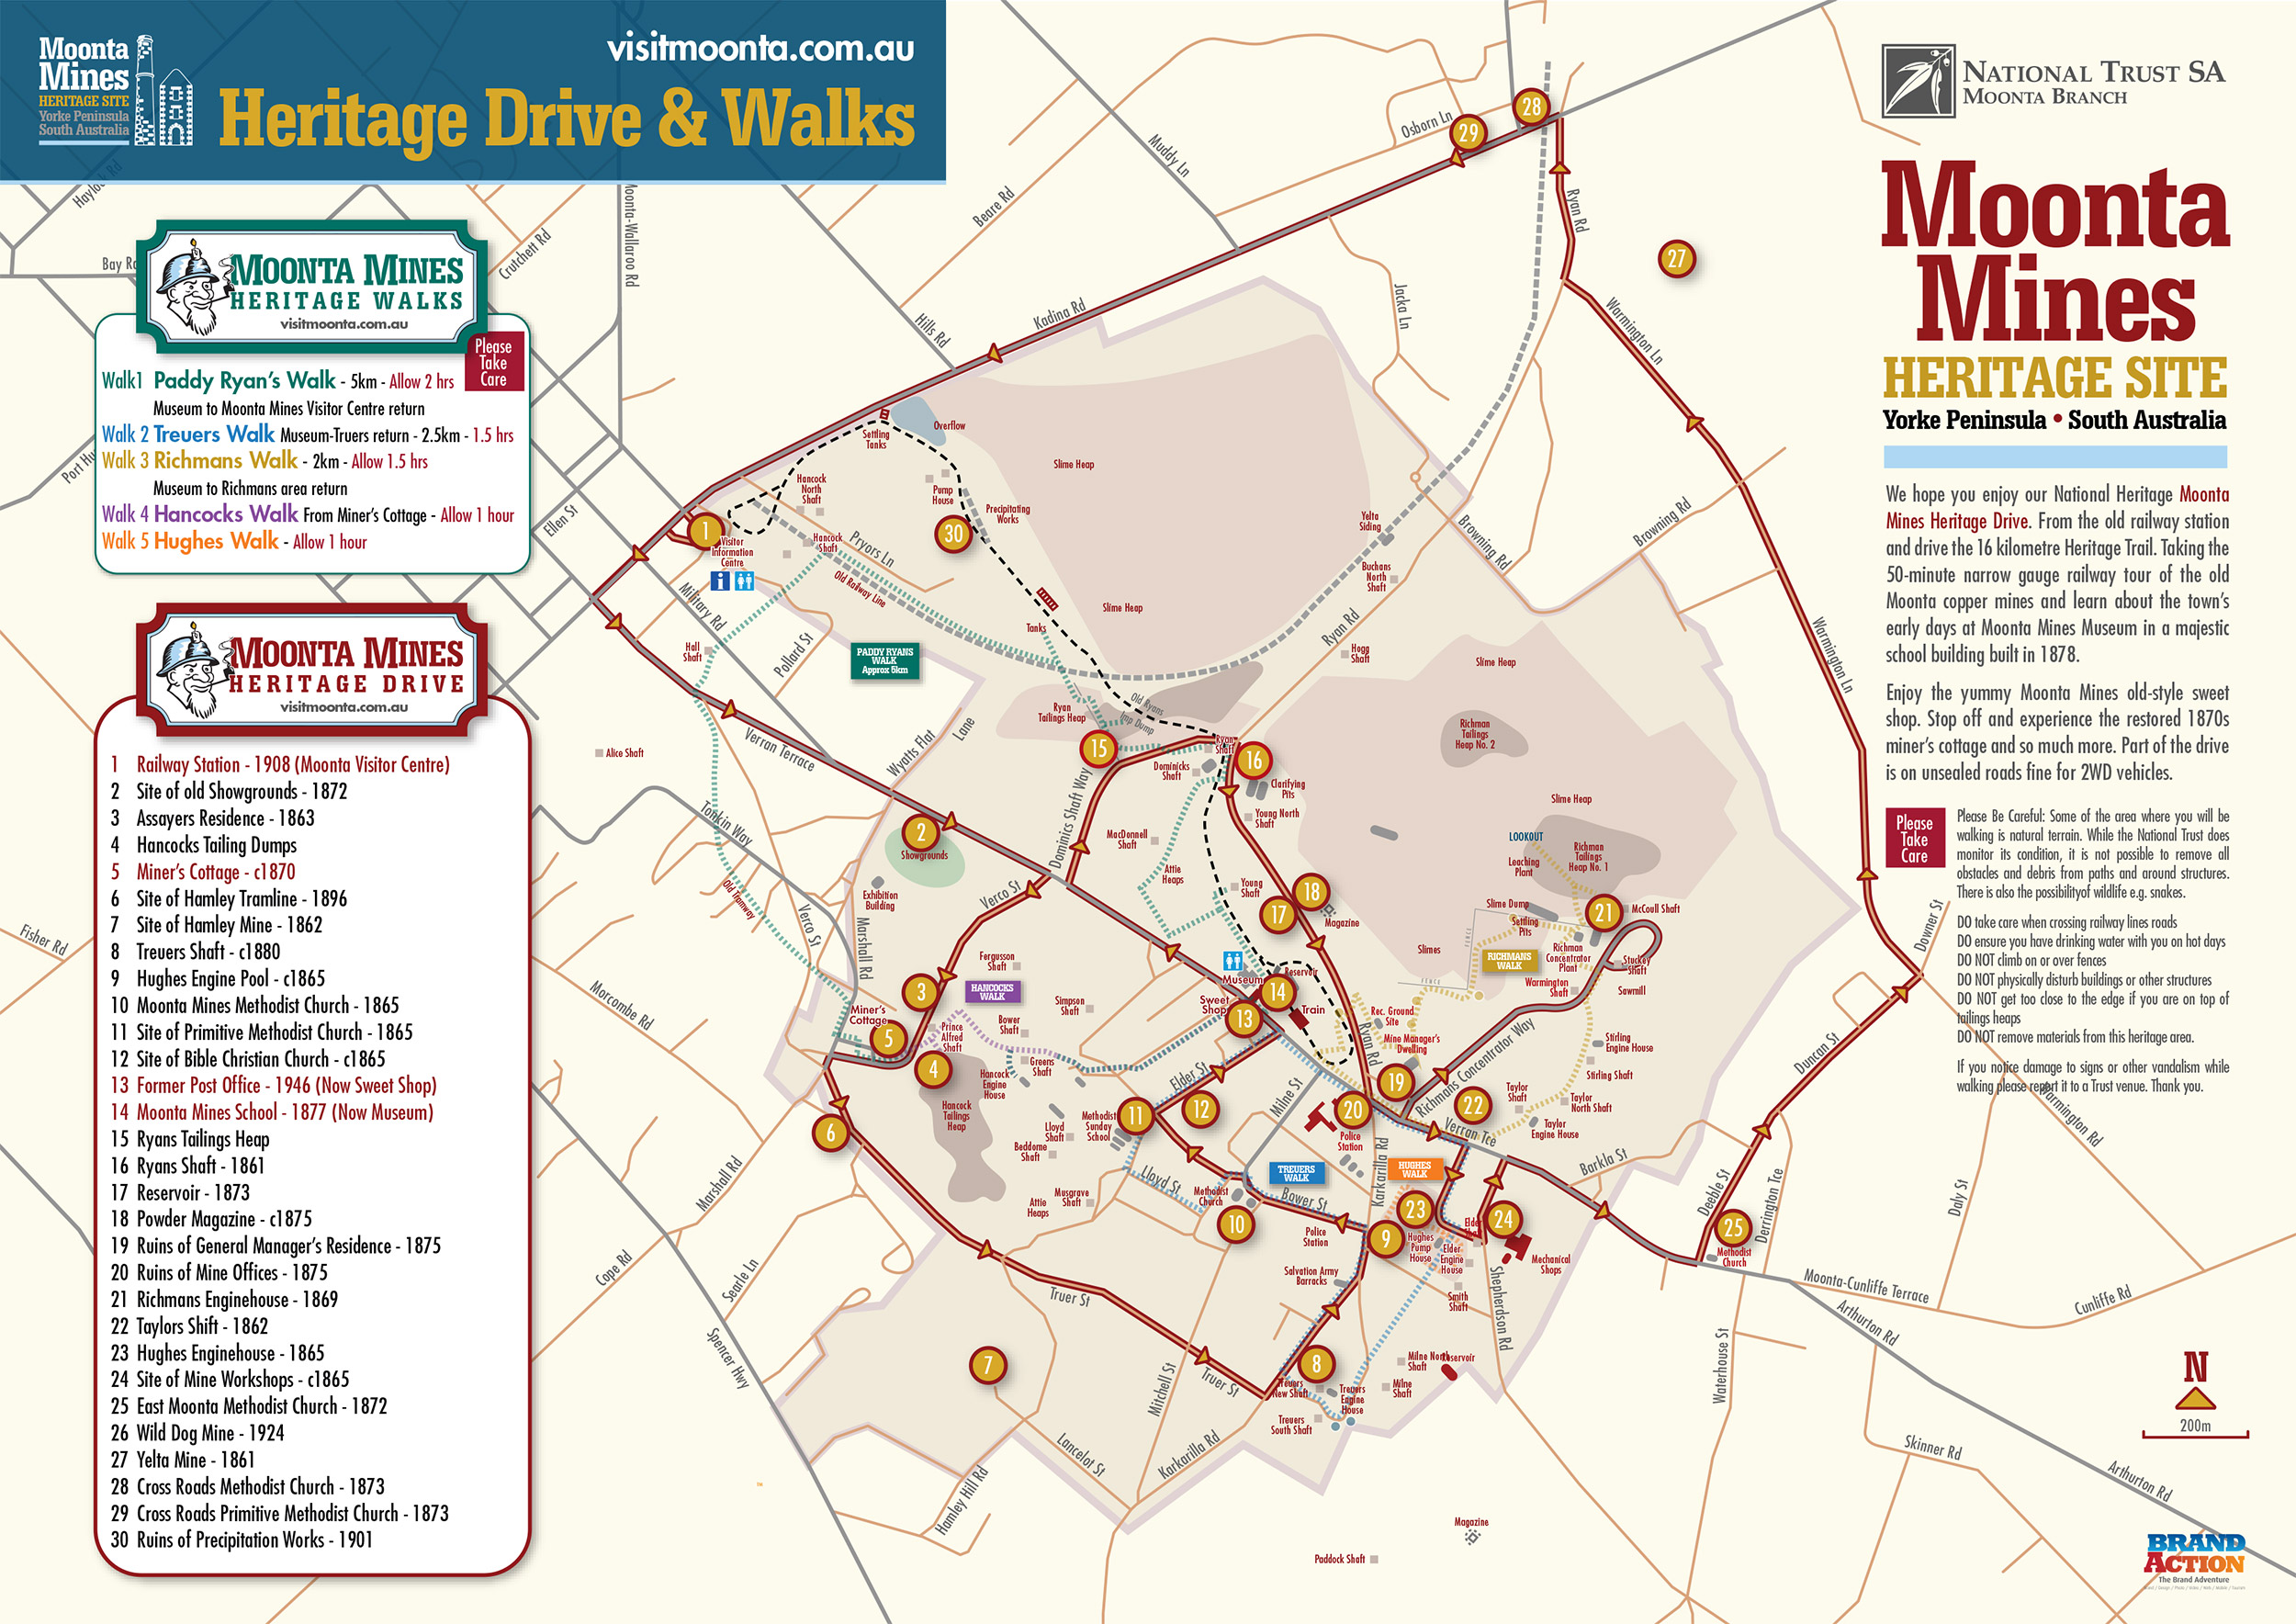 Moonta Mines Heritage Drive & Walks map